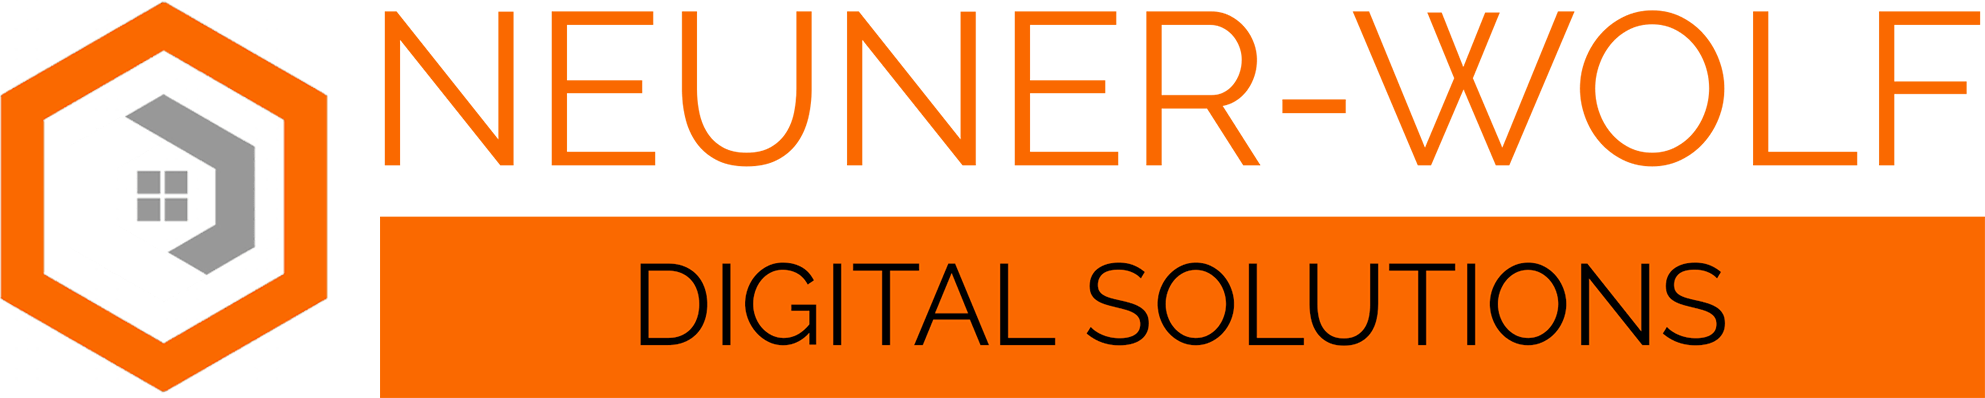 NEUNER-WOLF Digital Solutions